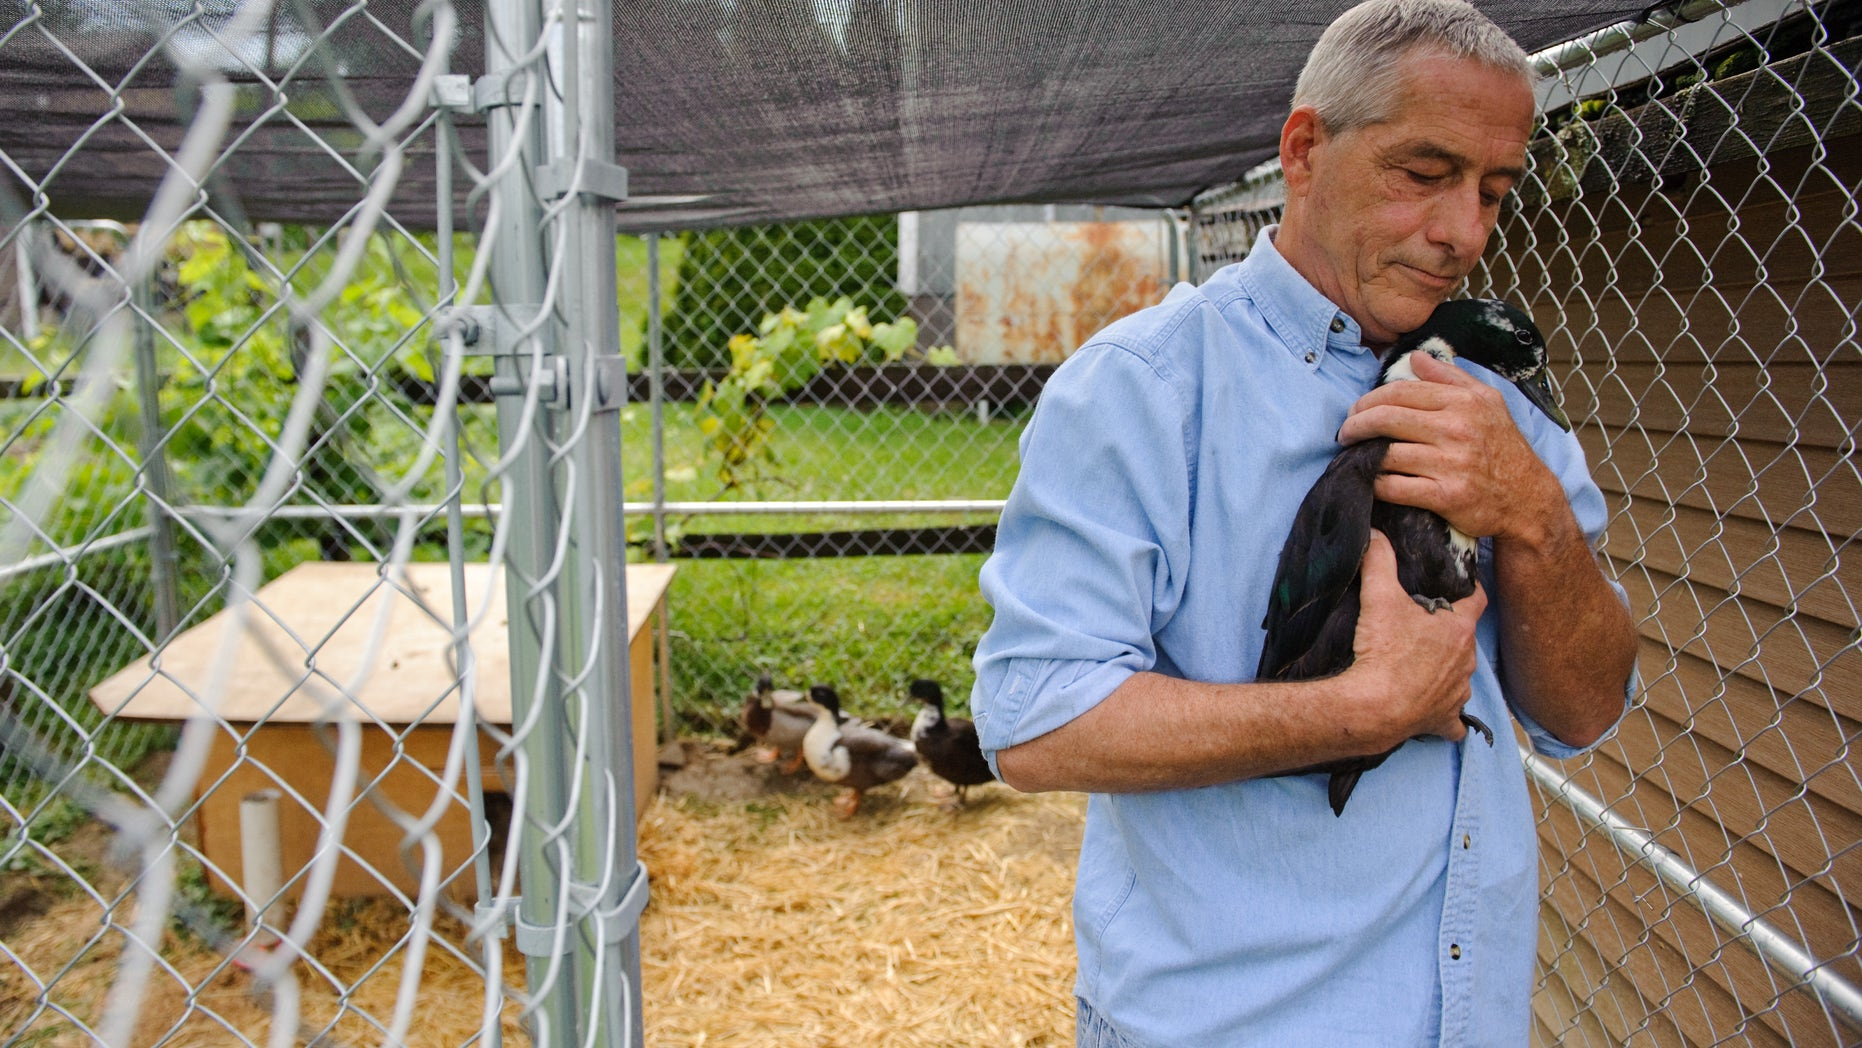 James Kistler of Delmont holds his pet duck Fred at his home on Wednesday, June 26, 2013.  Brian F. Henry | Tribune-Review